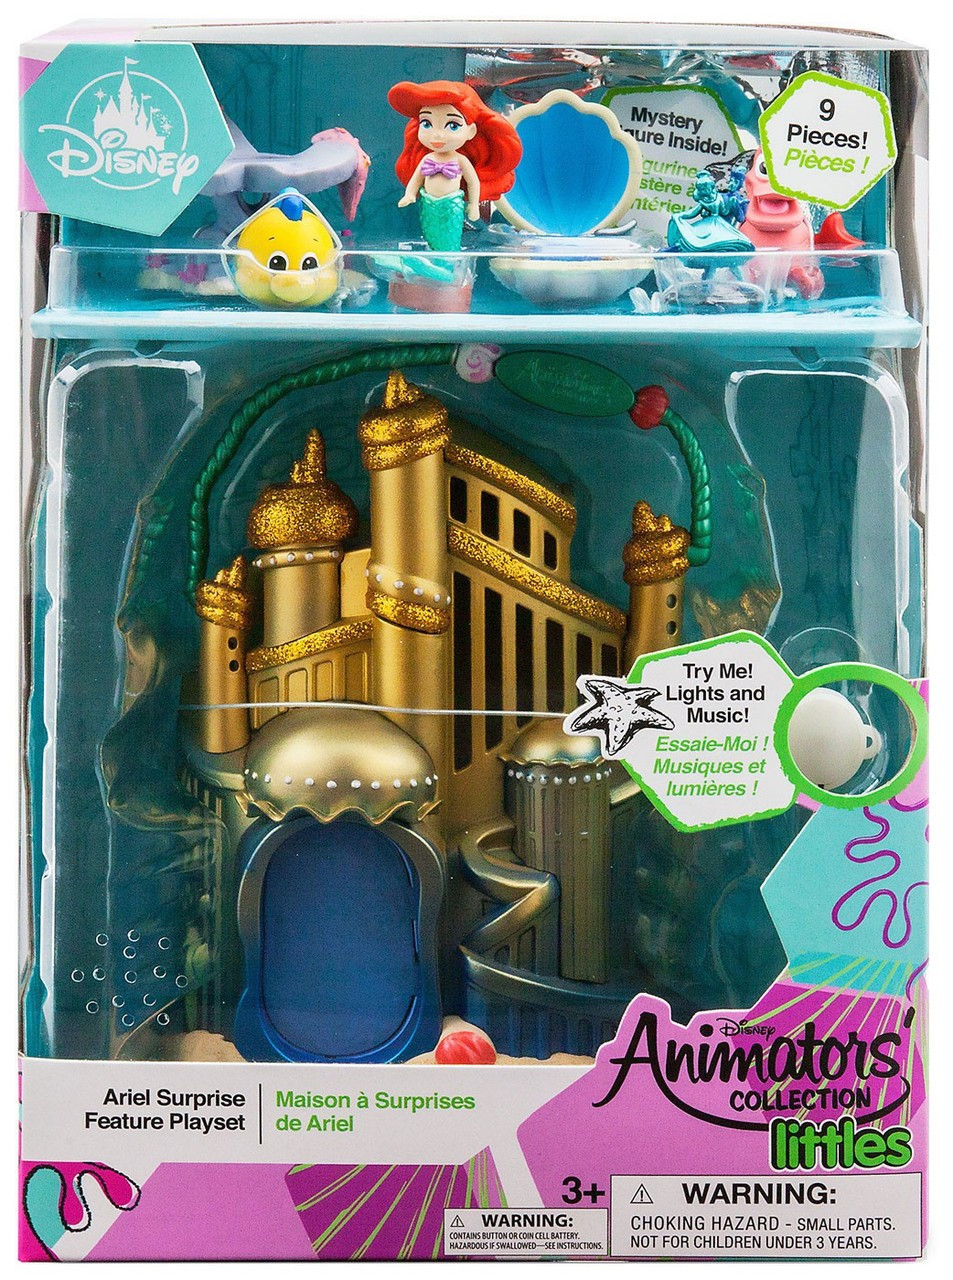 Disney Authentic Animators Collection Ariel Little Mermaid Mini Doll Play Set